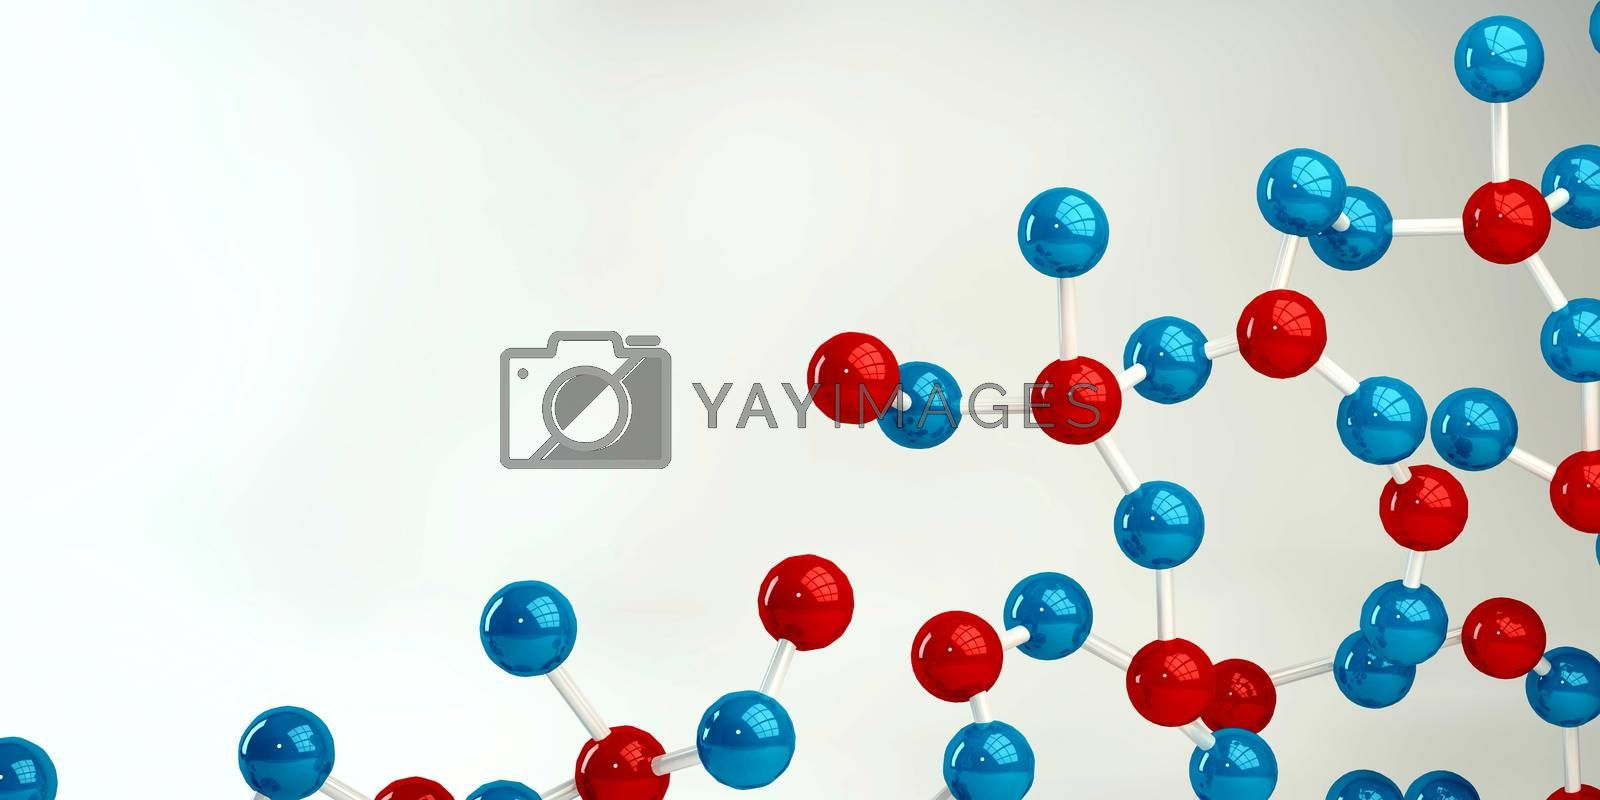 Abstract Molecules Design Background in Blue and Red